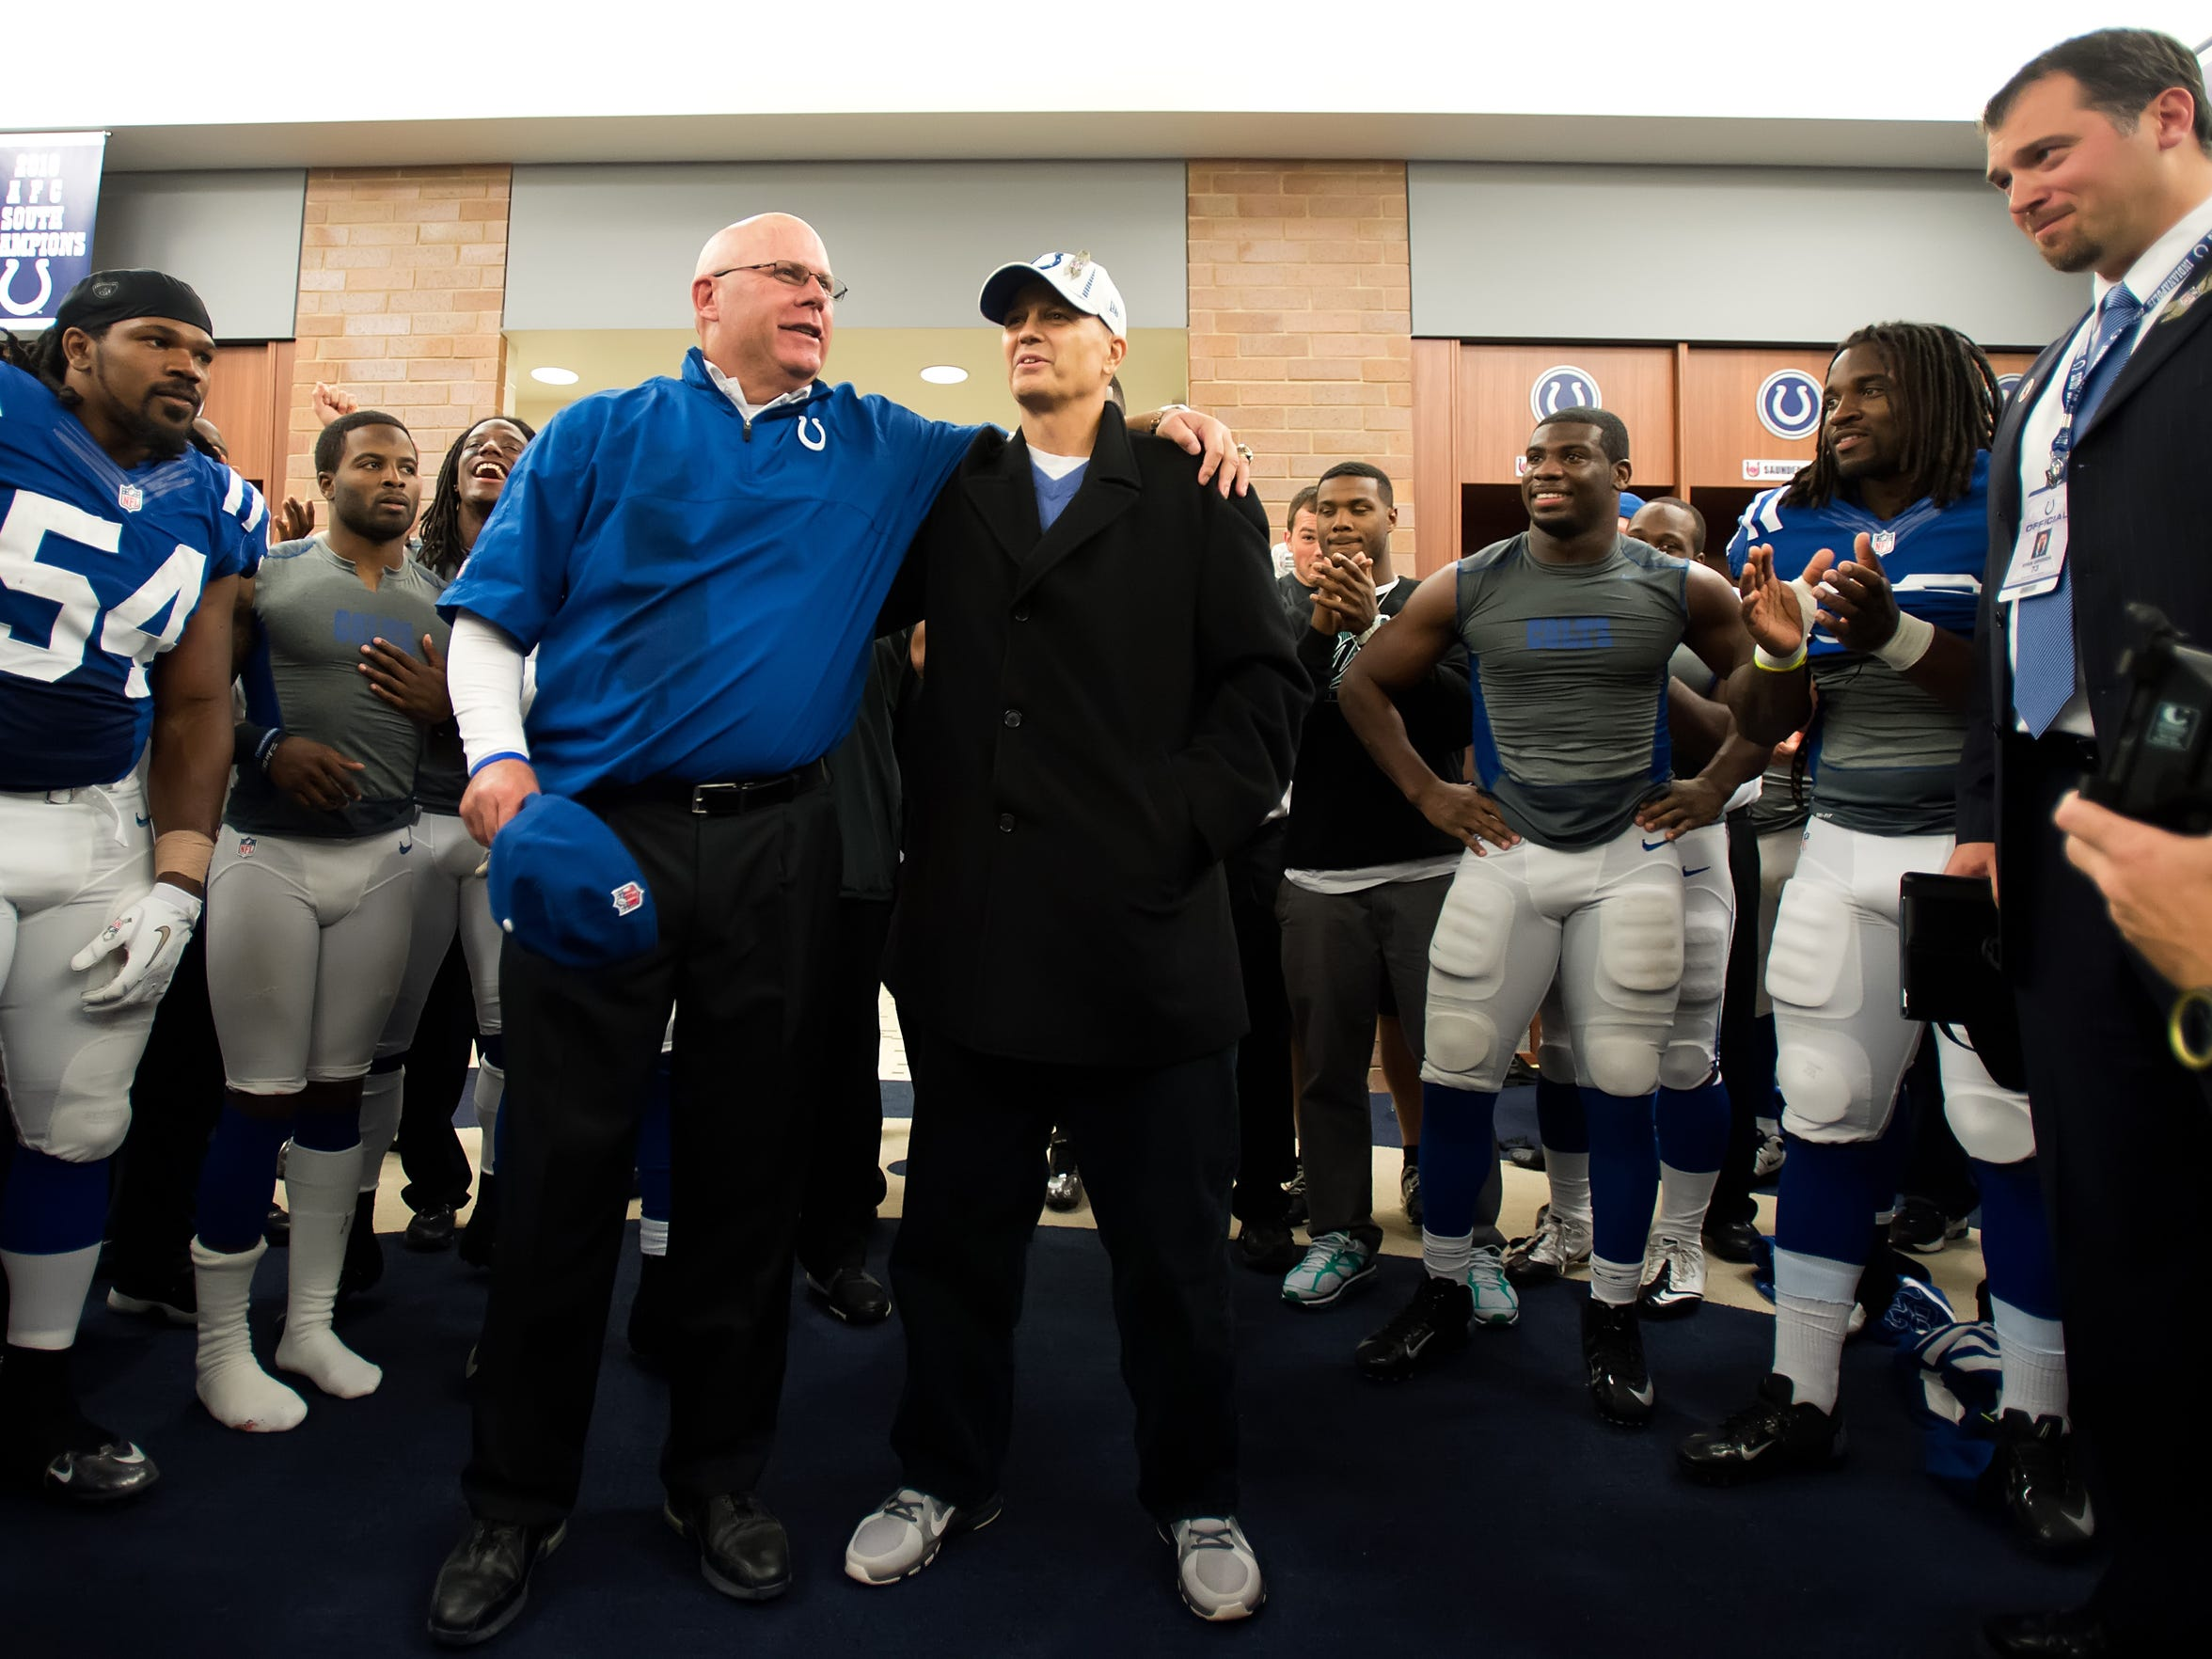 Chuck Pagano, with interim coach Bruce Arians, visited the Colts' locker room after a win in 2012 while he was still undergoing cancer treatment.